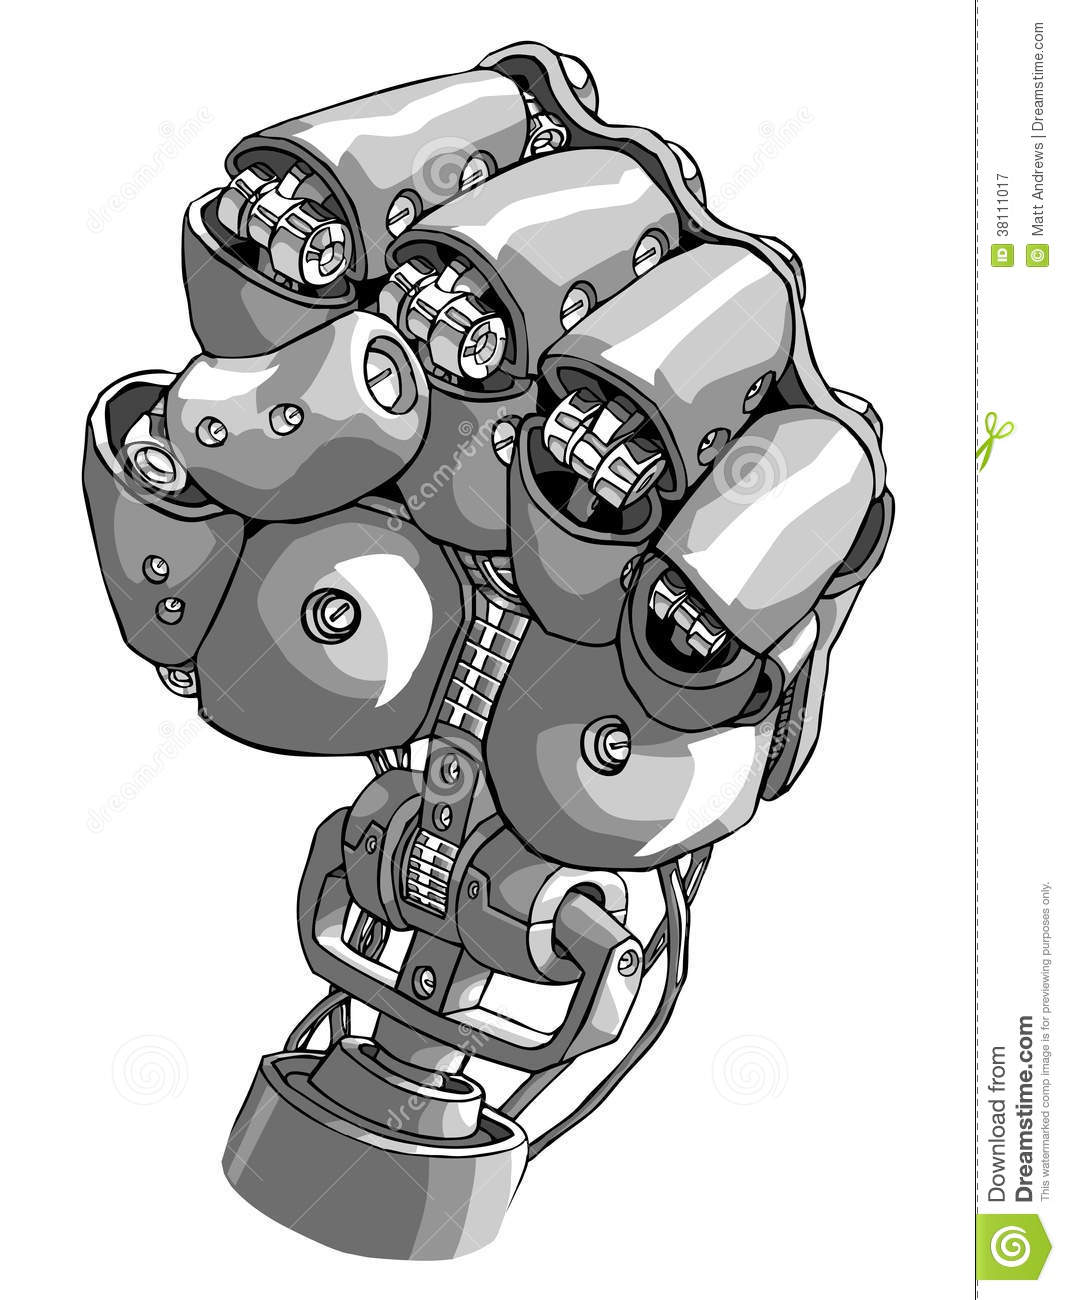 ... robot overlords? Its a robot hand making a fist. Now in vector format